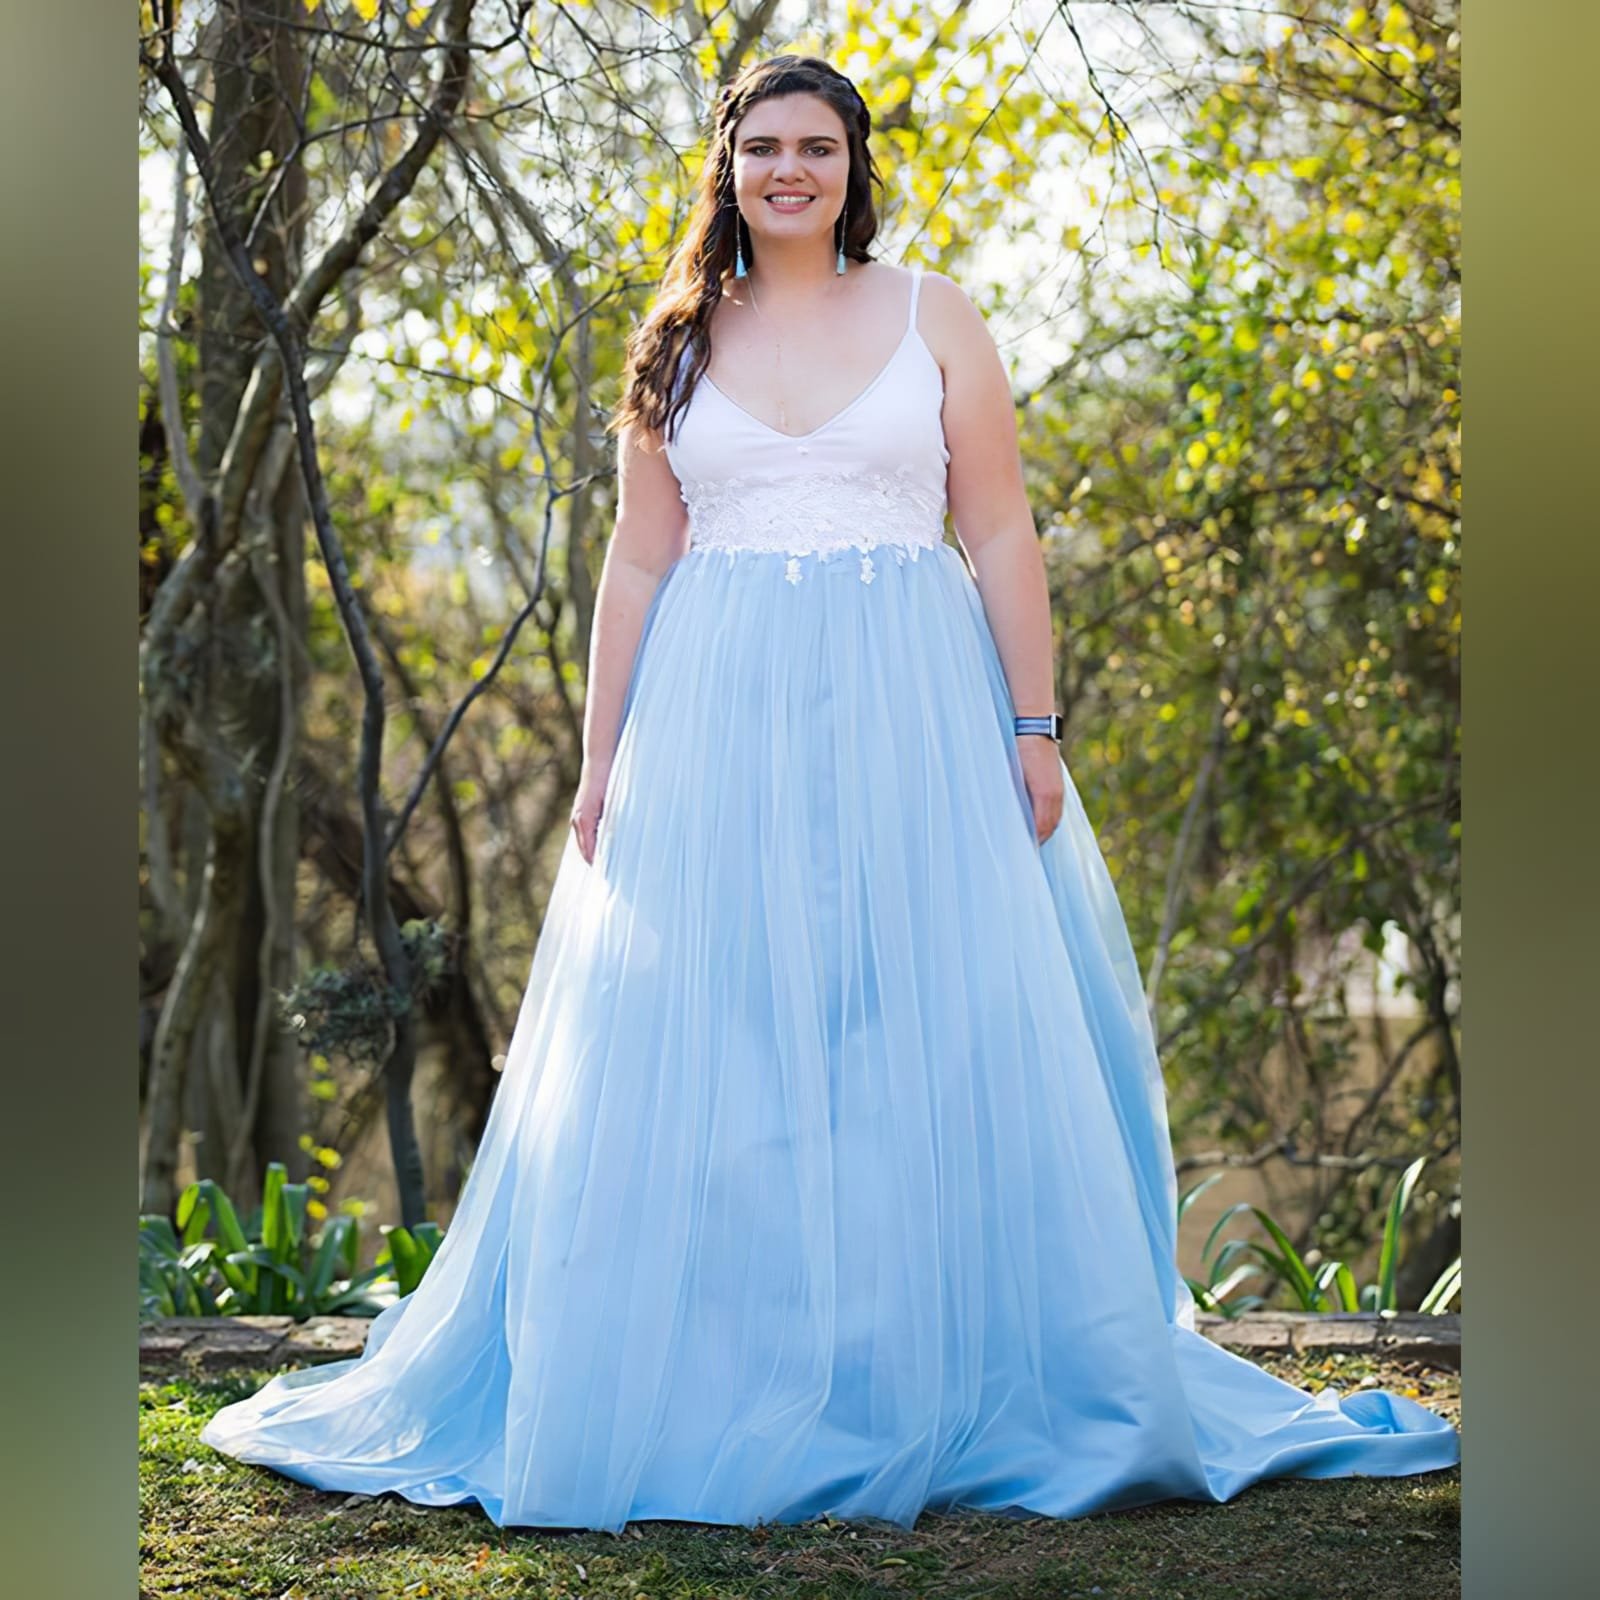 Powder blue and white prom ball gown dress 5 powder blue and white prom ball gown dress detailed with white 3d lace and beads with a low back and thin shoulder straps. With a train.